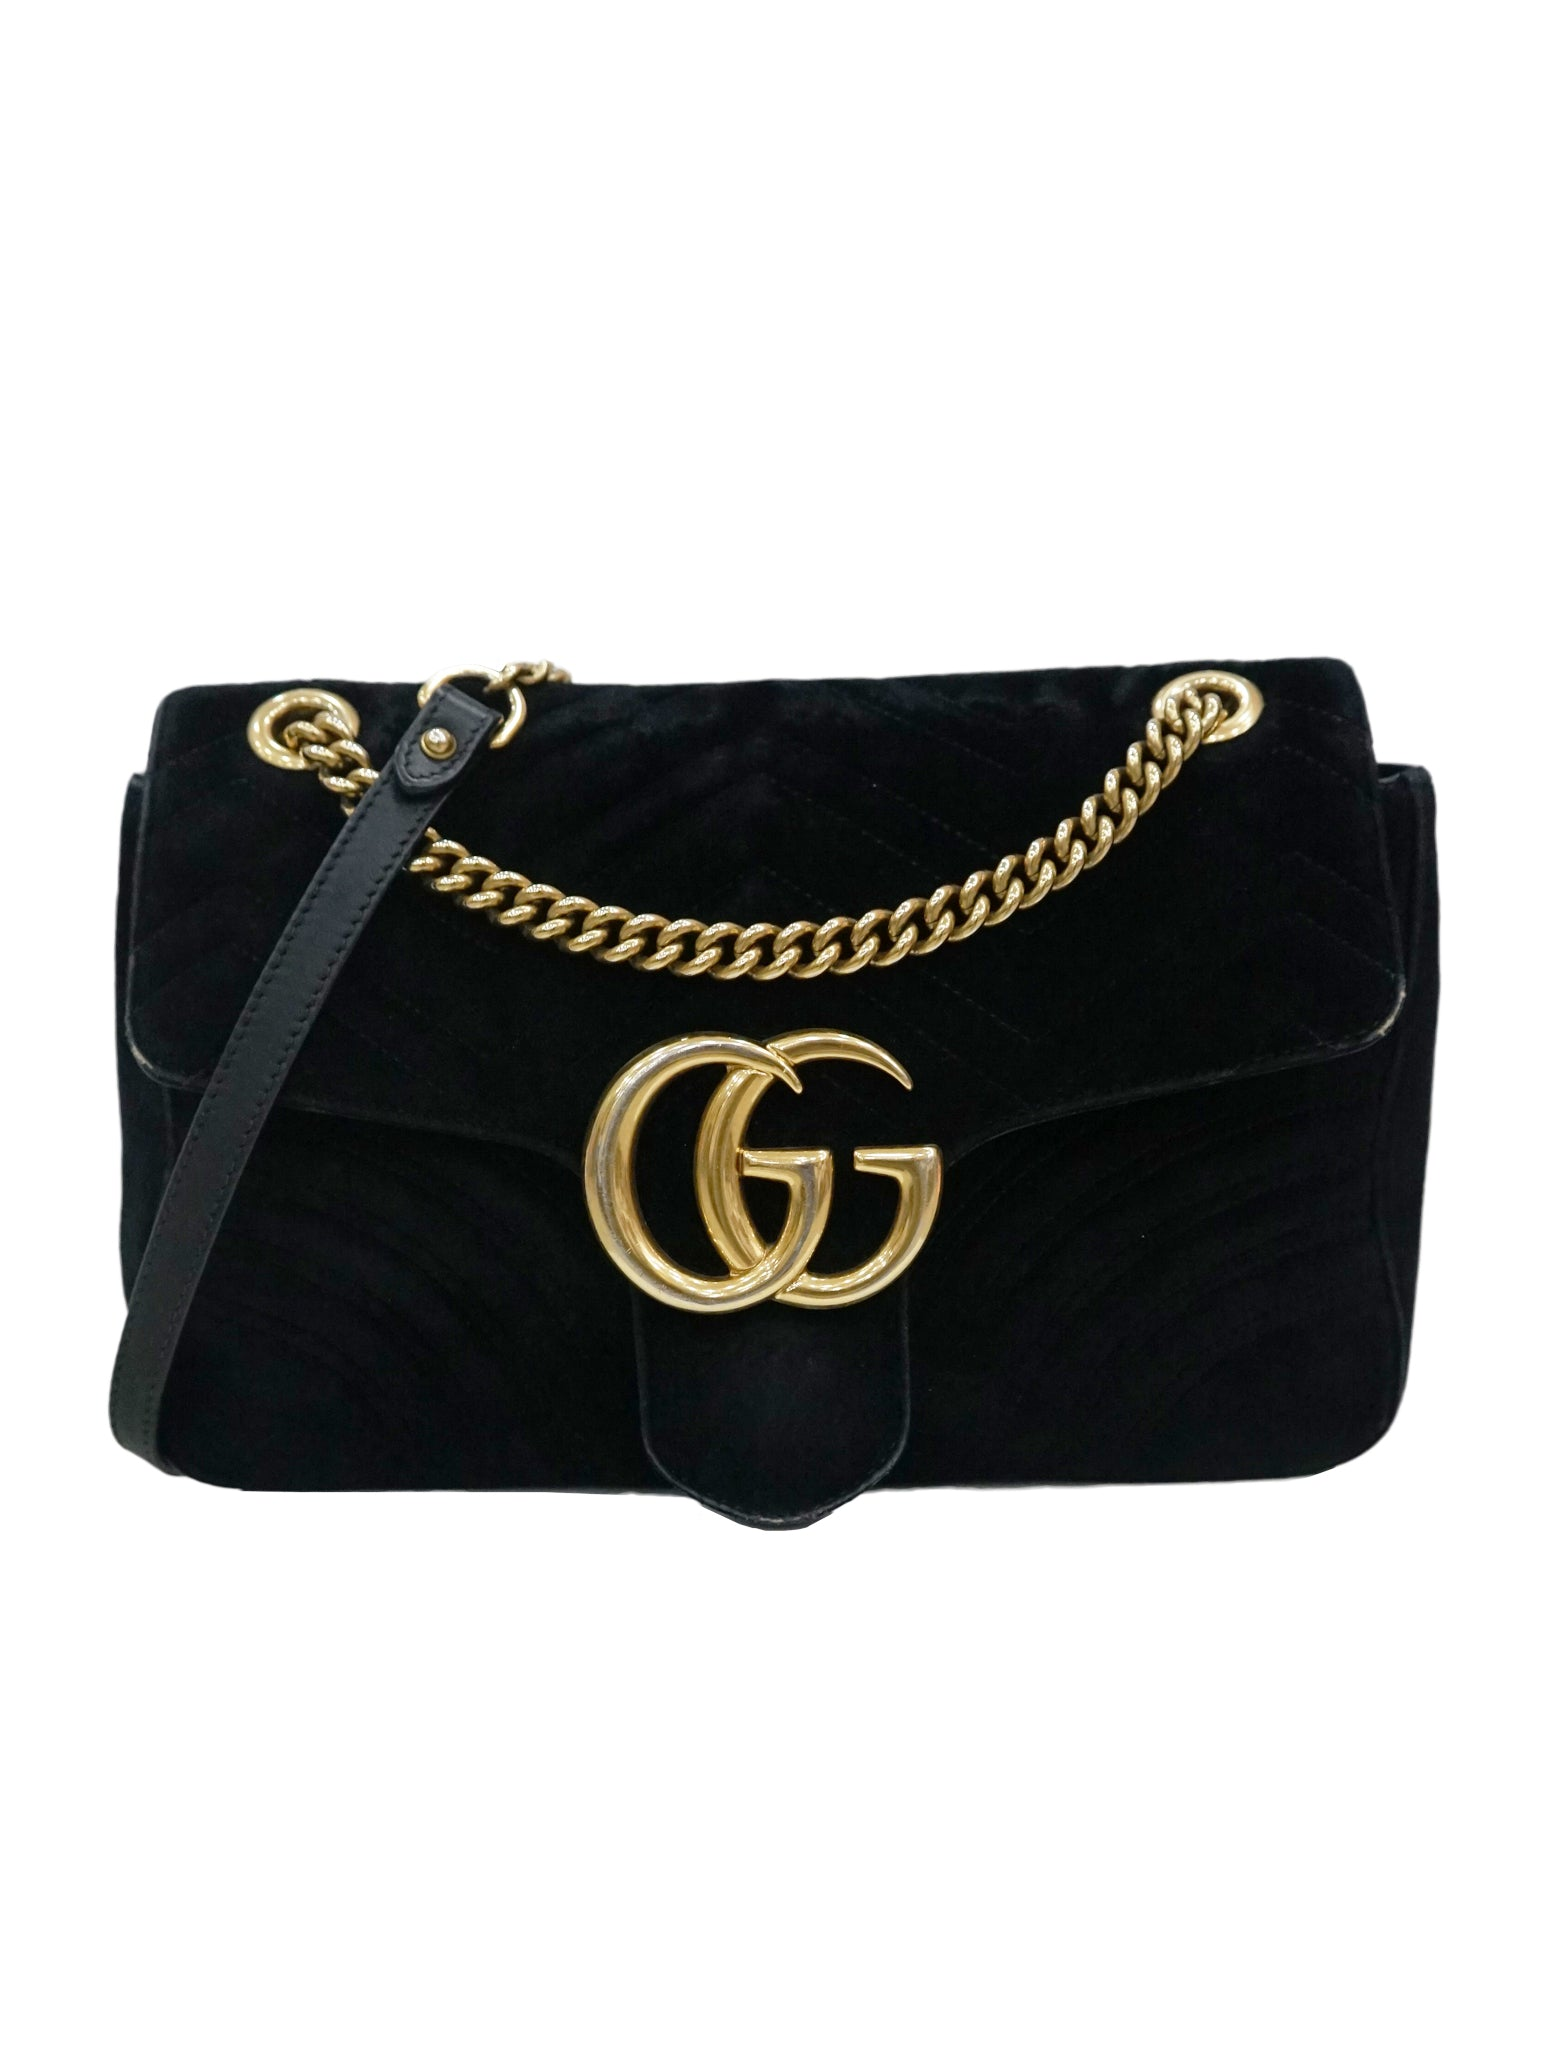 fd409ce7b GUCCI GG MARMONT BLACK VELVET SHOULDER BAG – Kidsstyleforless